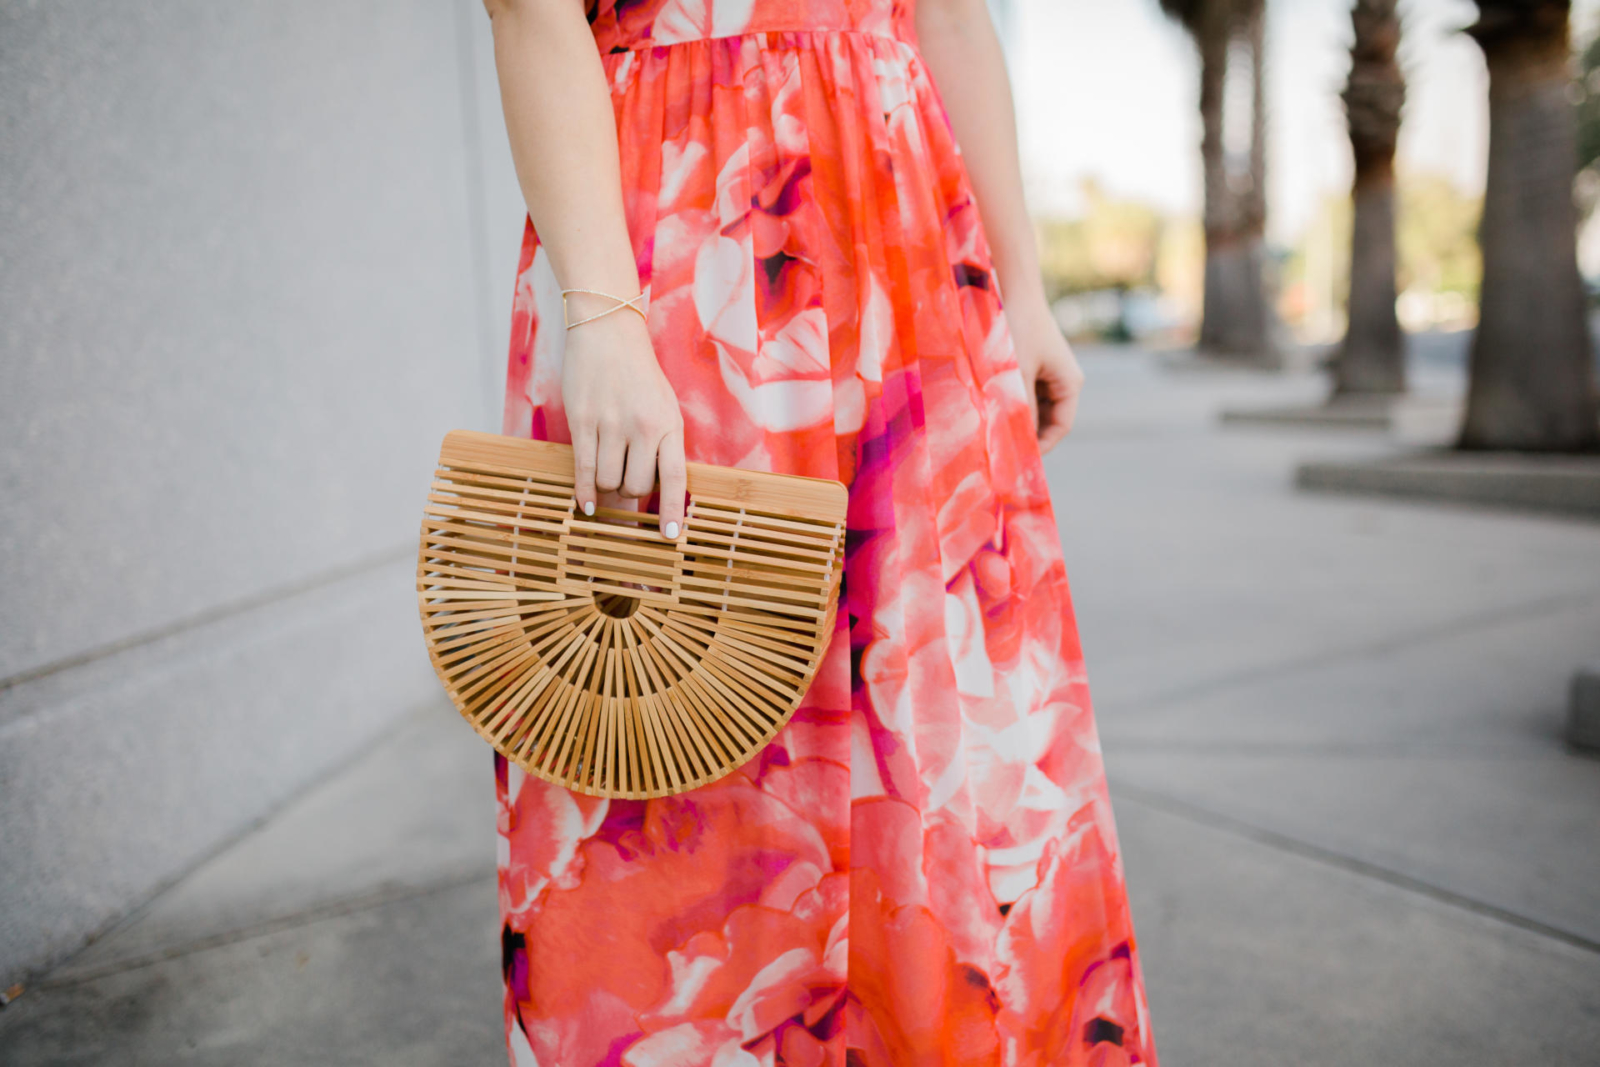 Florida Floral Maxi Dress Vacation Outfit Inspiration